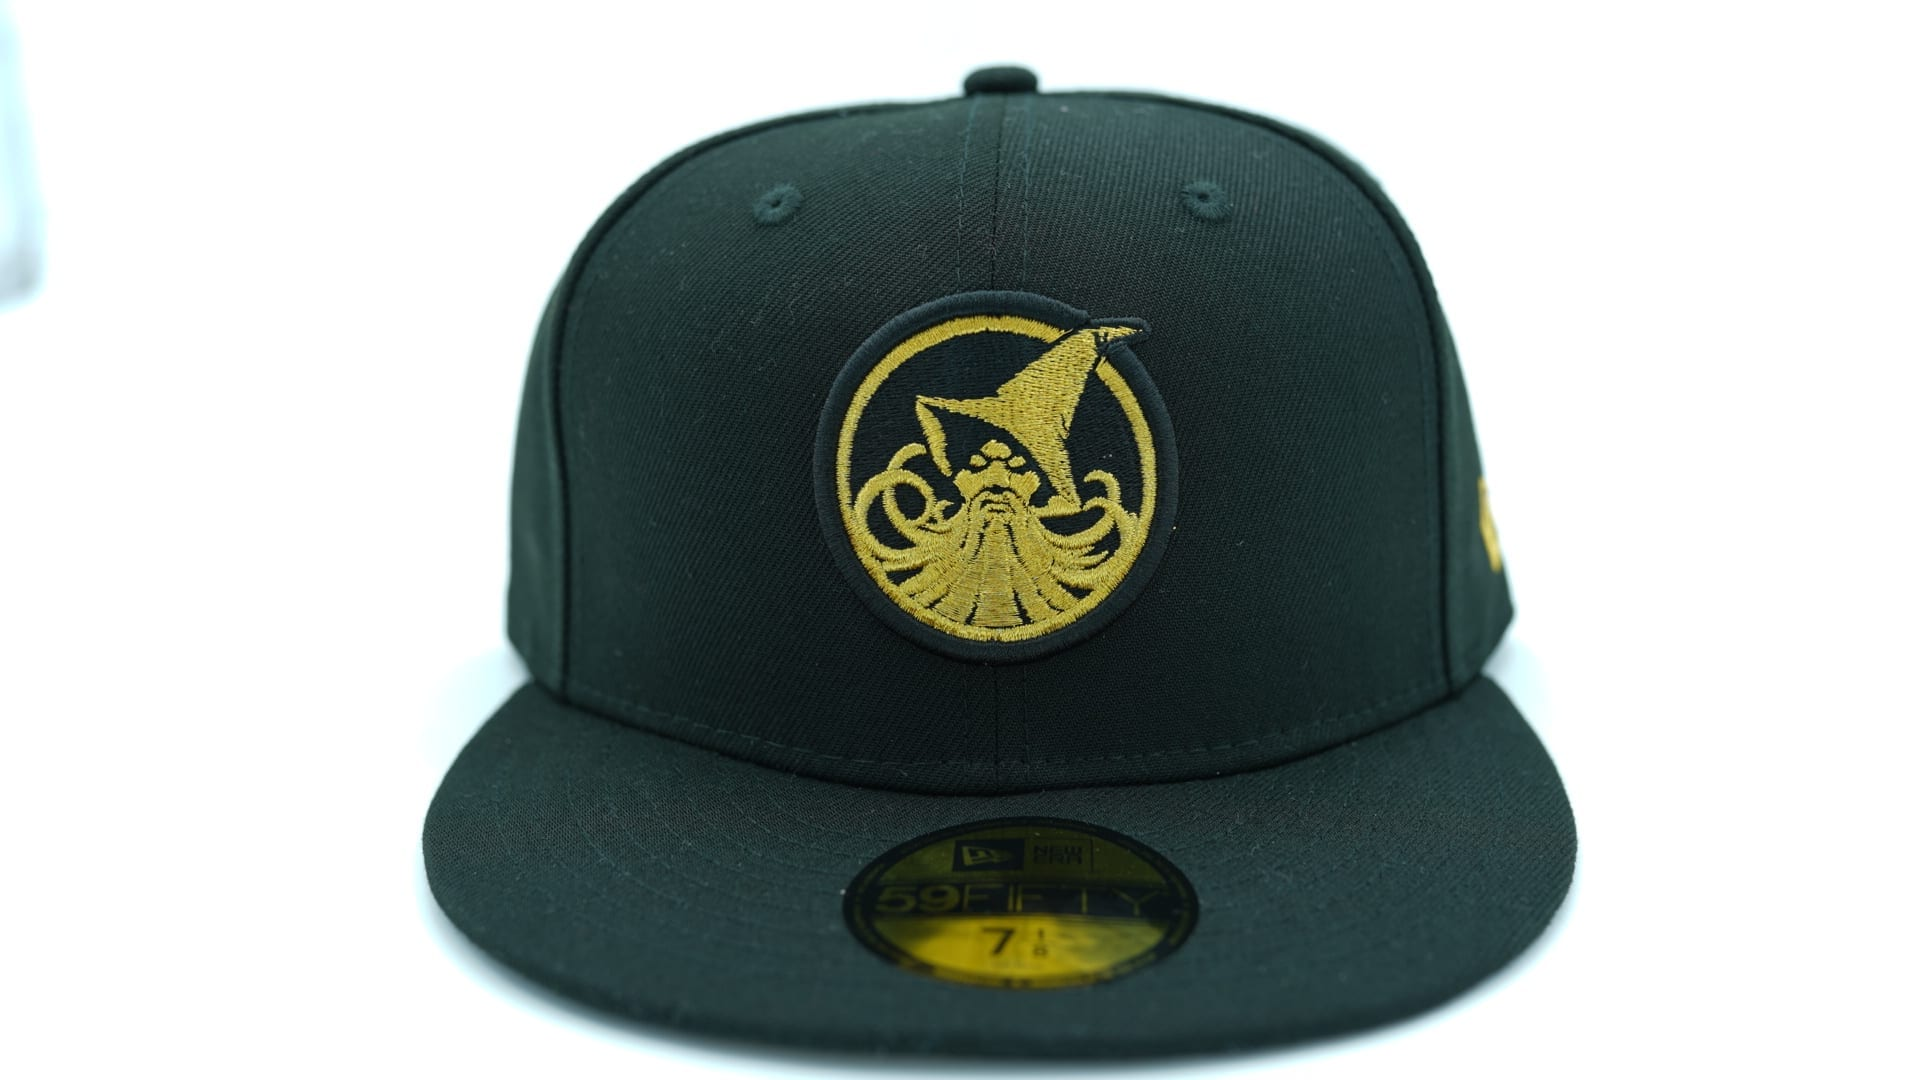 york brown leather fitted baseball cap era caps hat